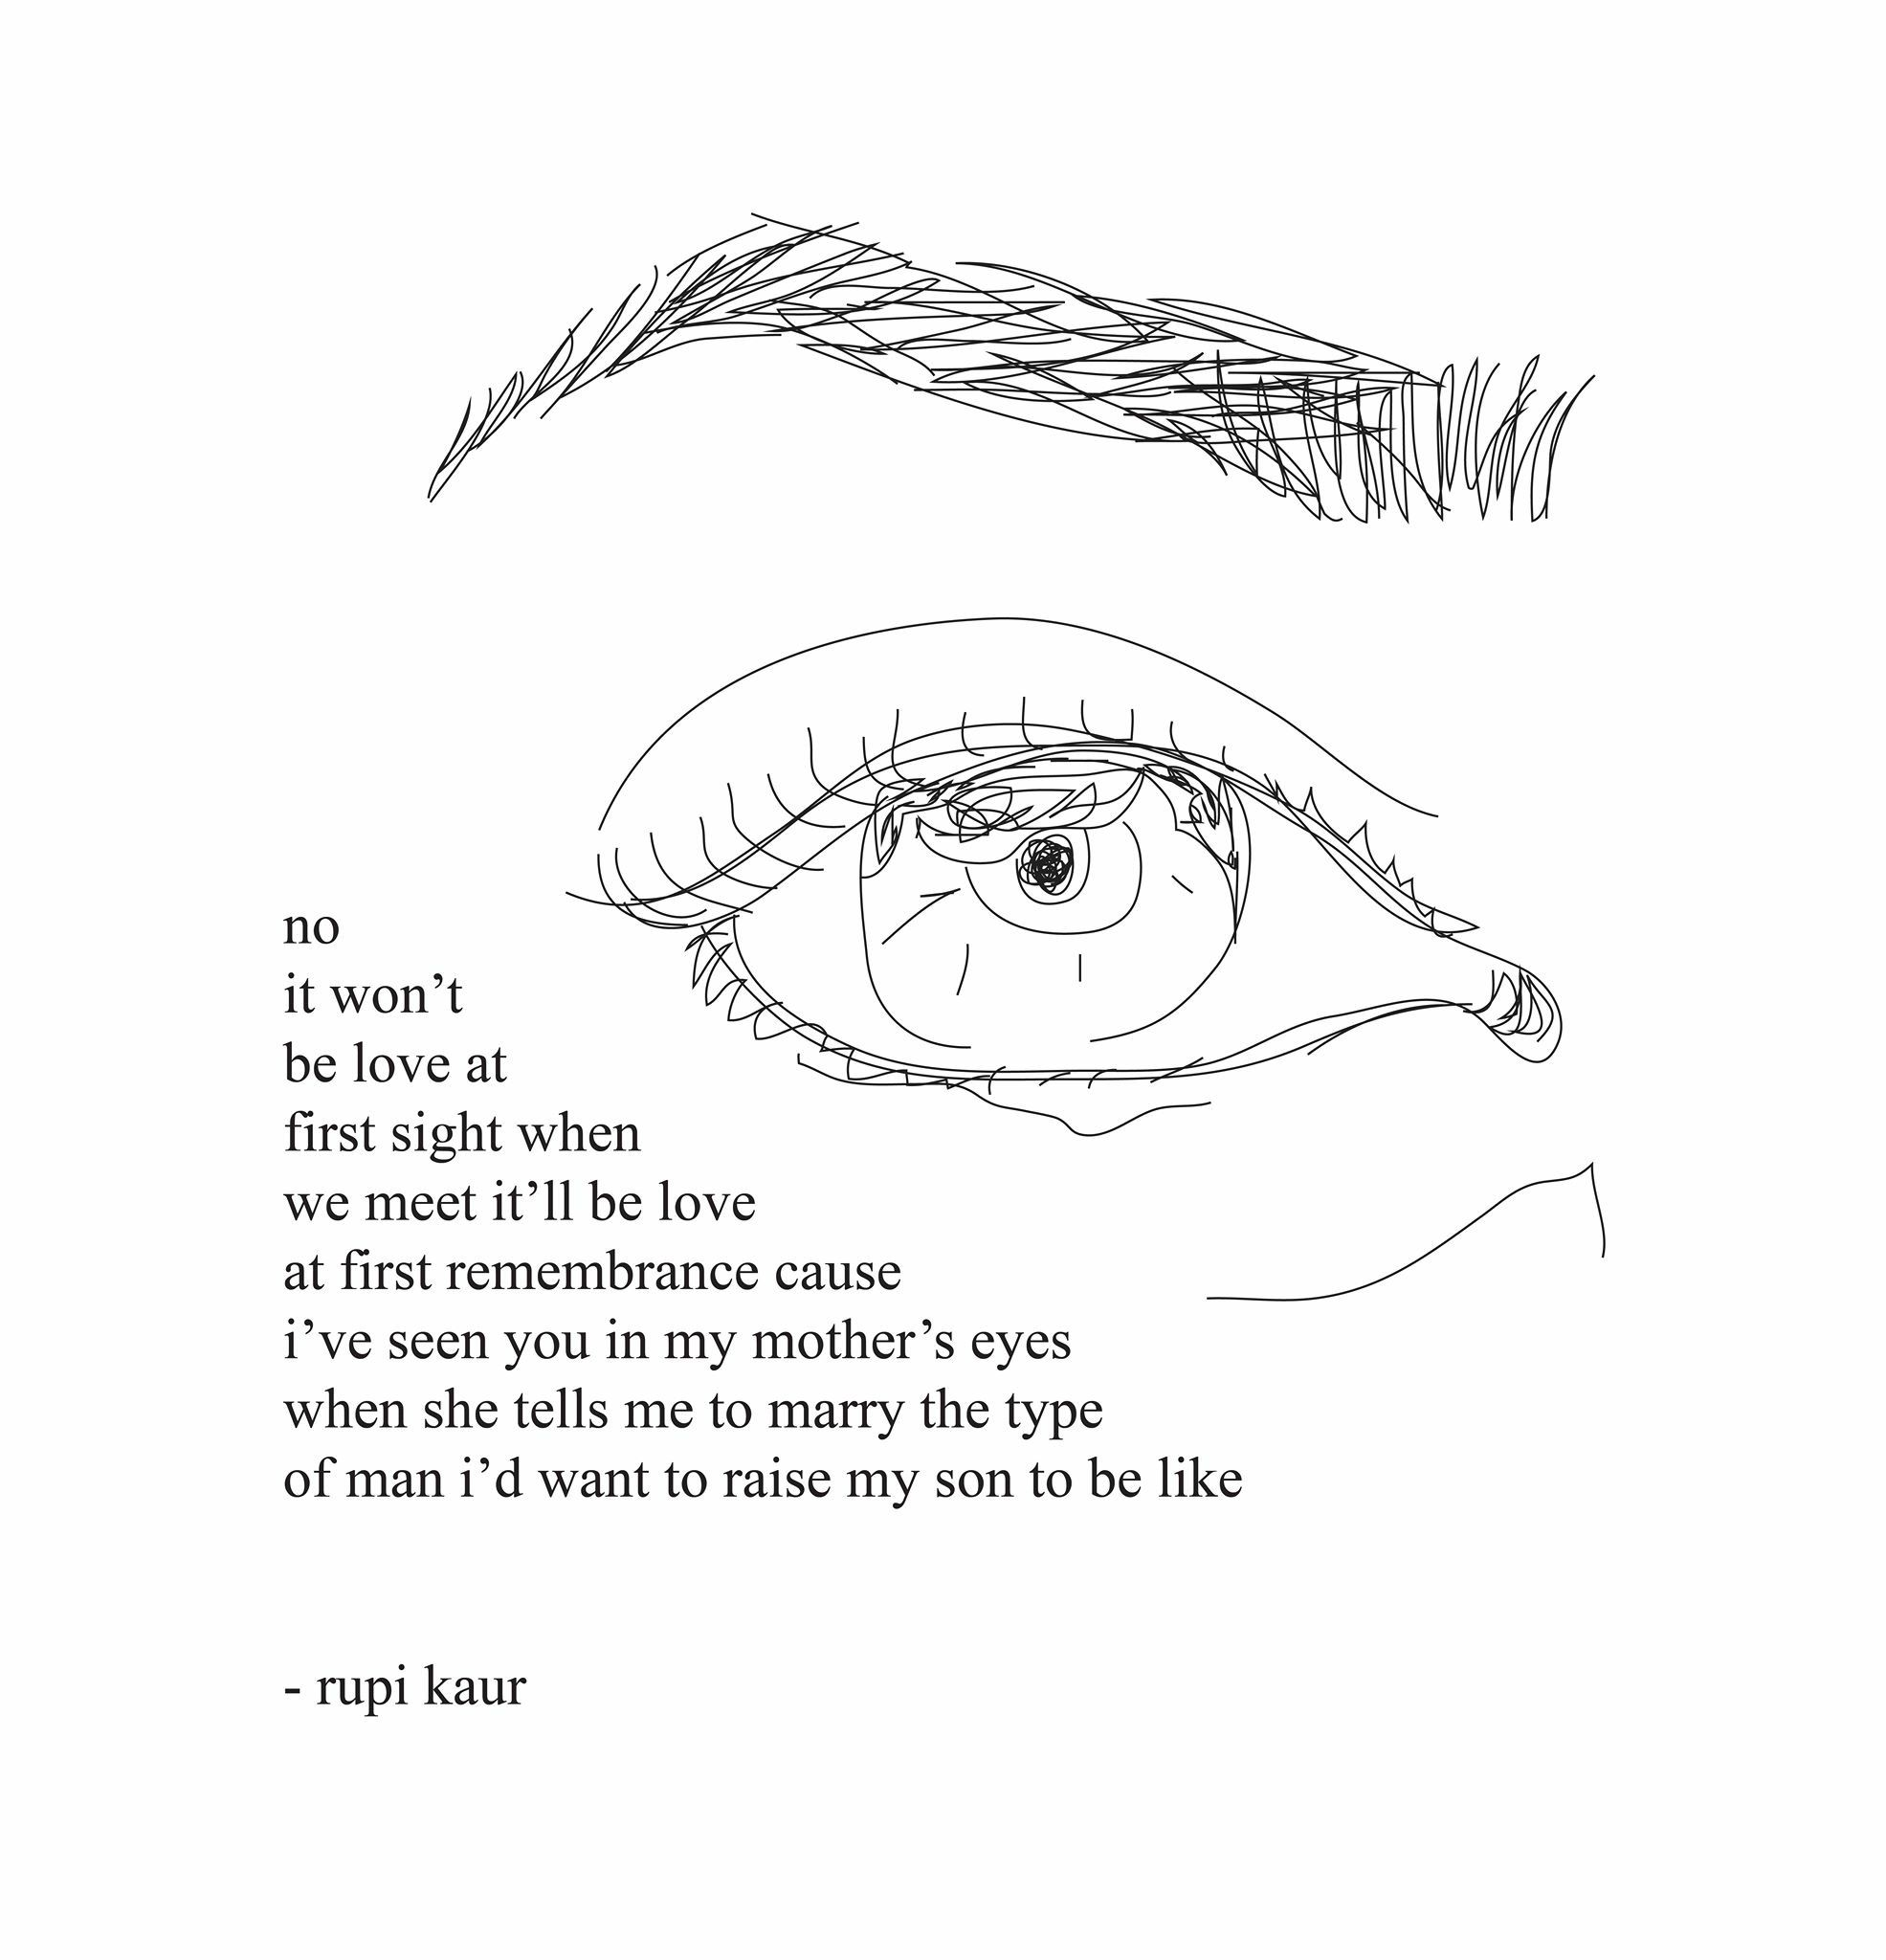 Rupi Kaur Quotes Enchanting Image Result For Rupi Kaur Quotes  Loveee  Pinterest  Rupi Kaur